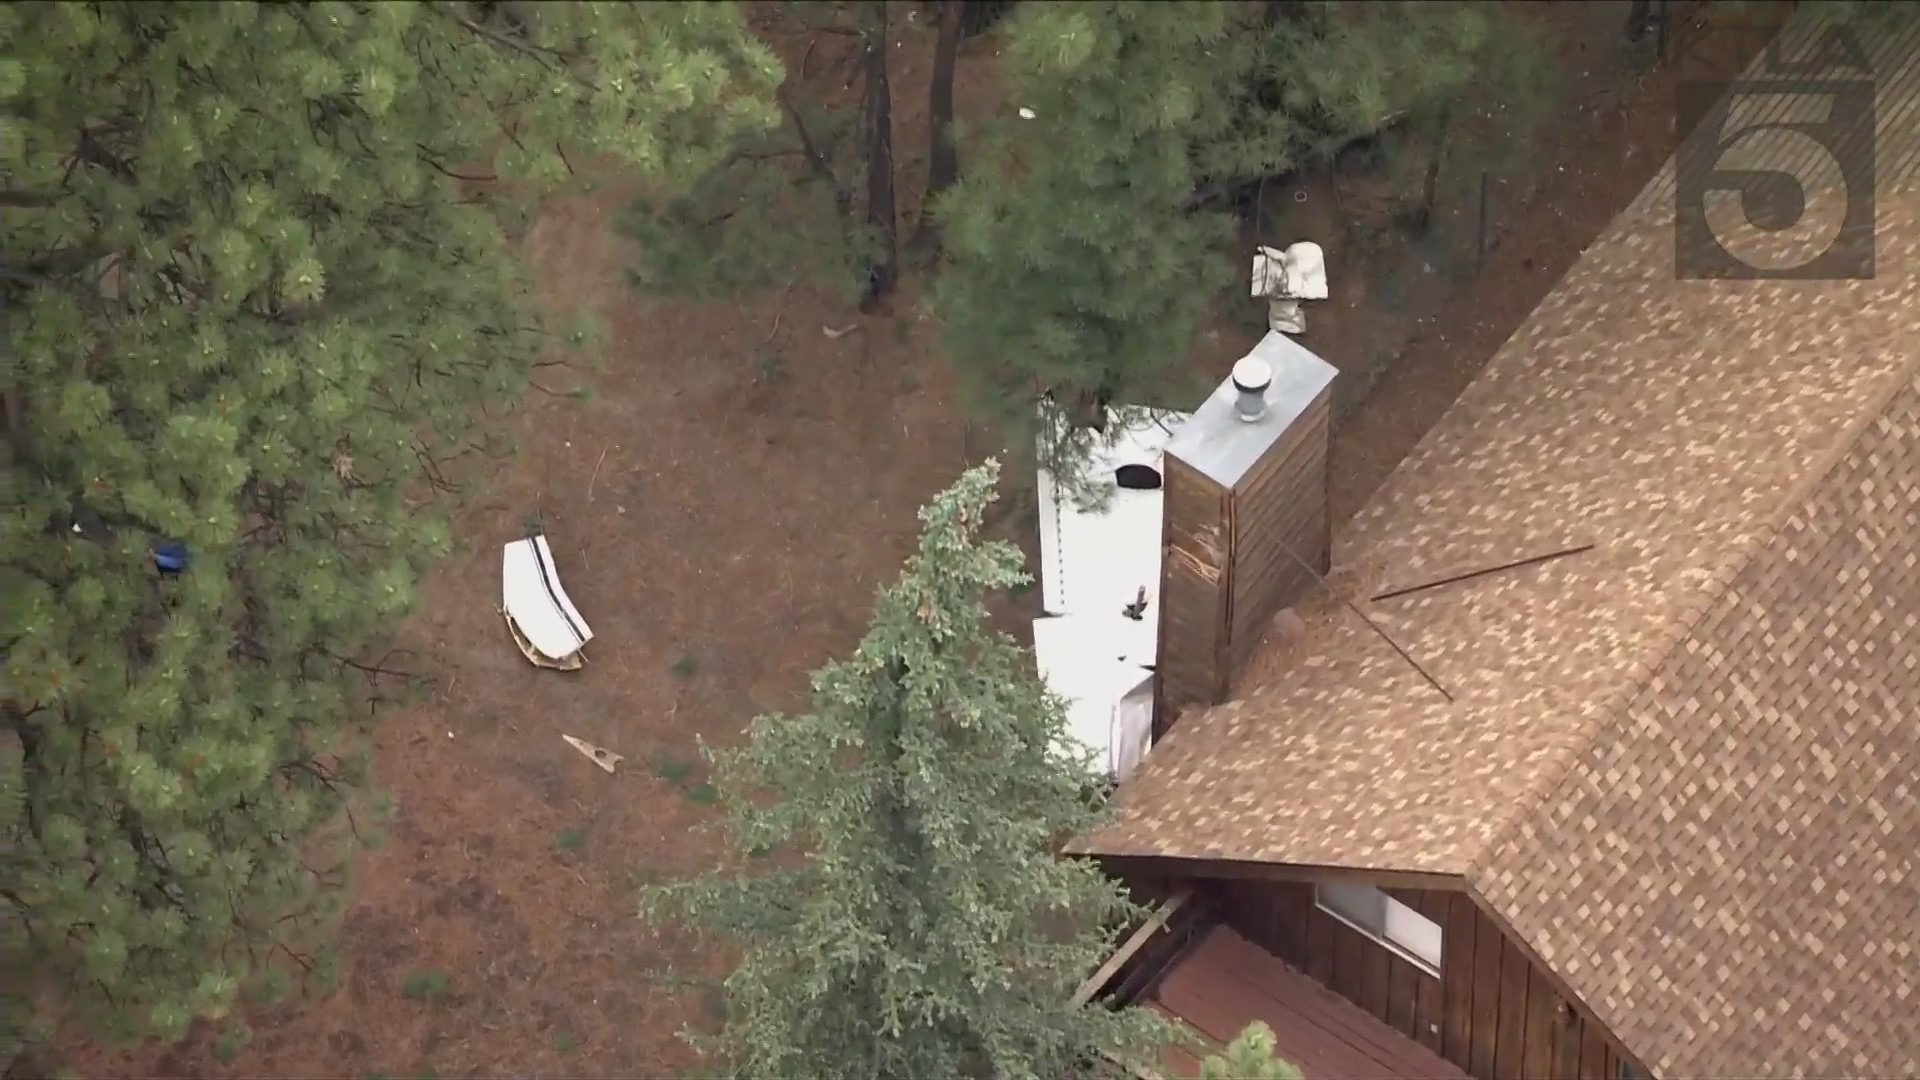 Two people were seriously injured when a plane they were on crashed in Big Bear and caught fire on June 22,2021, officials said. (KTLA)